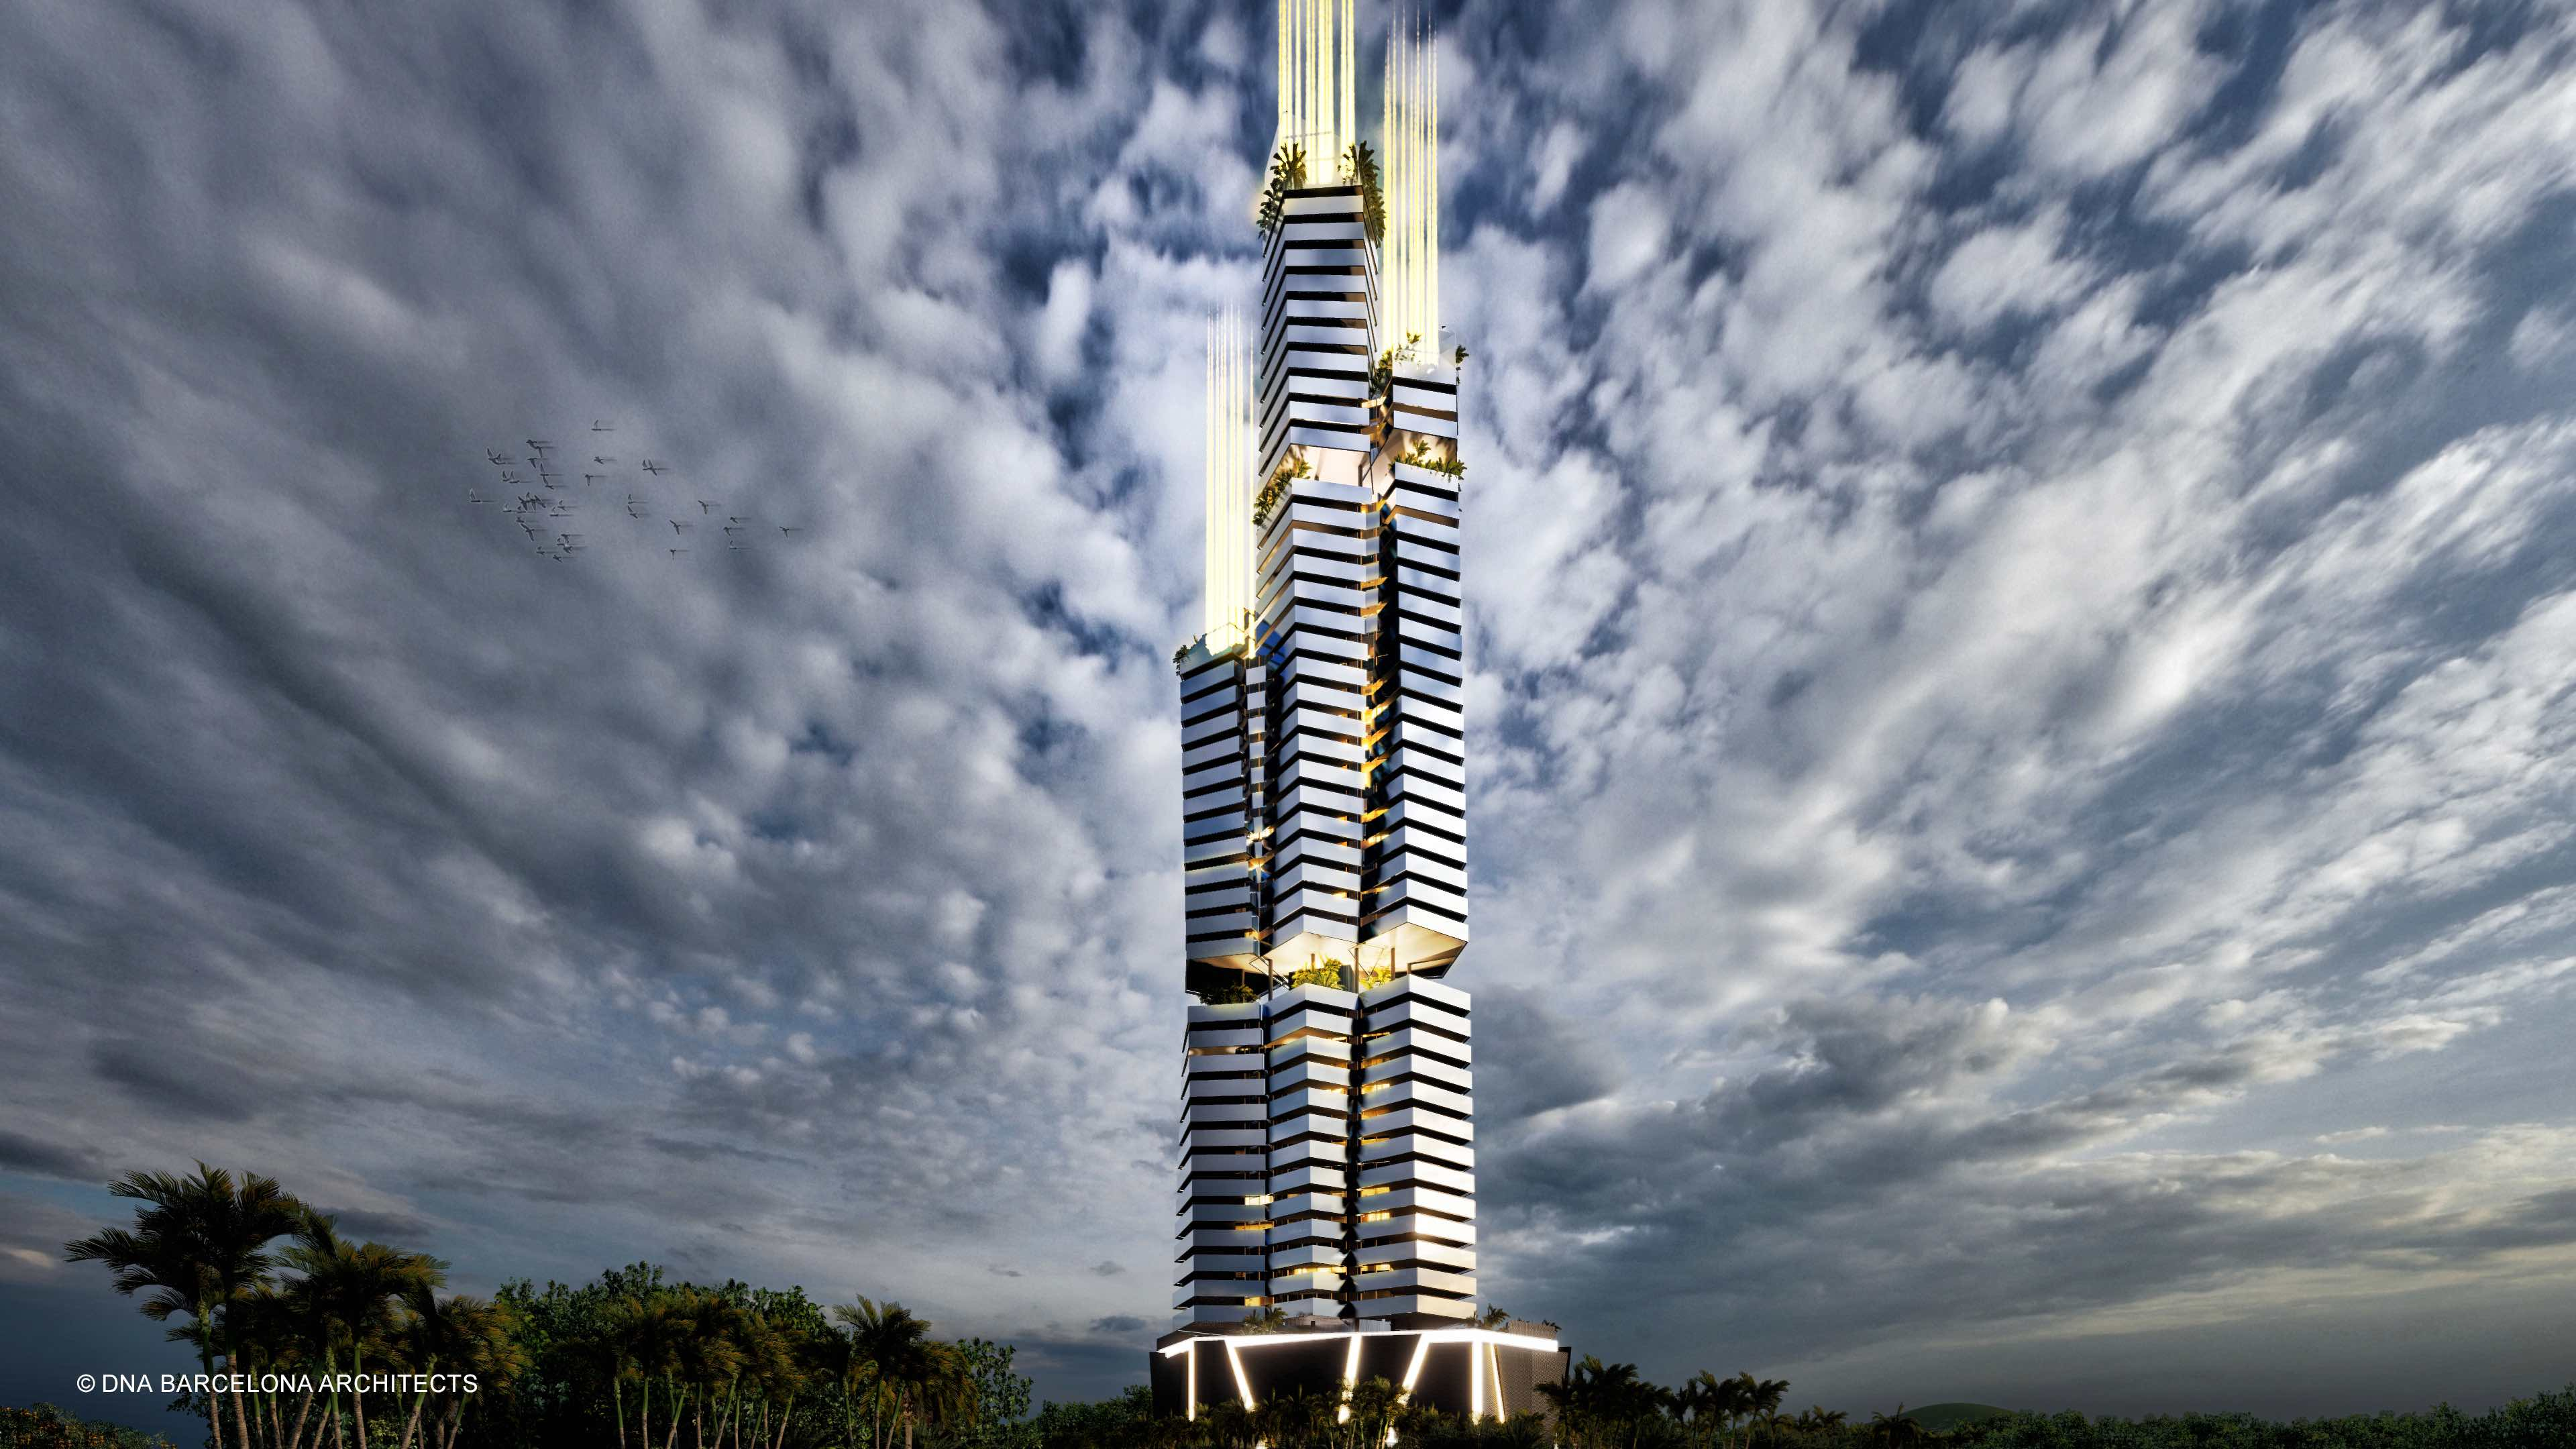 Kryptonite_Tower_SPAIN_by_dna_barcelona_architect_amazing_architecture_003.jpg